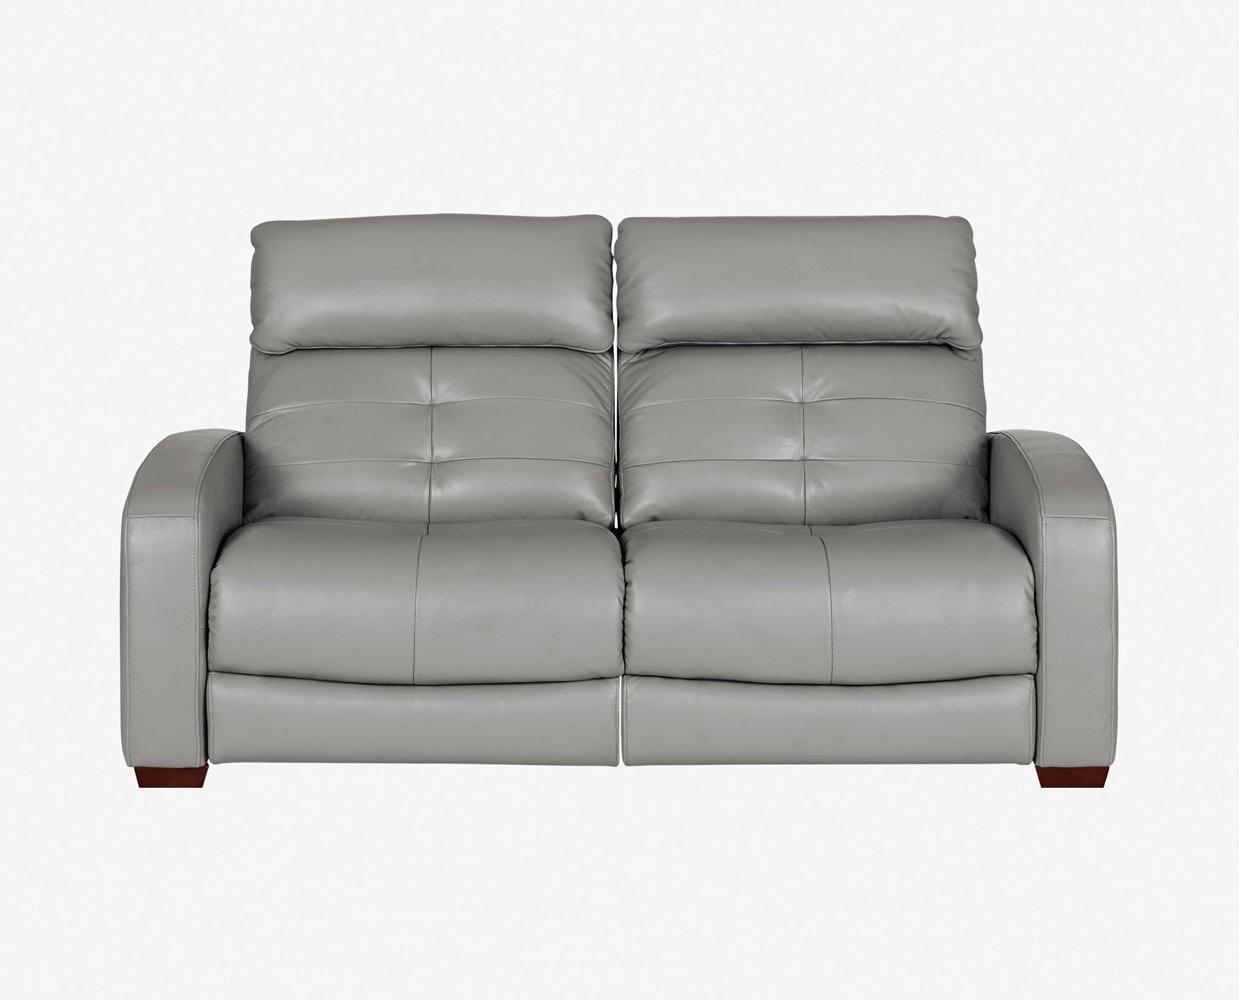 Clyde Grey Leather 3 Piece Power Reclining Sectionals With Pwr Hdrst & Usb Intended For Fashionable Diverting Luxury Lear Recliner Loveseat Larus Power Motion Sofa (View 10 of 20)